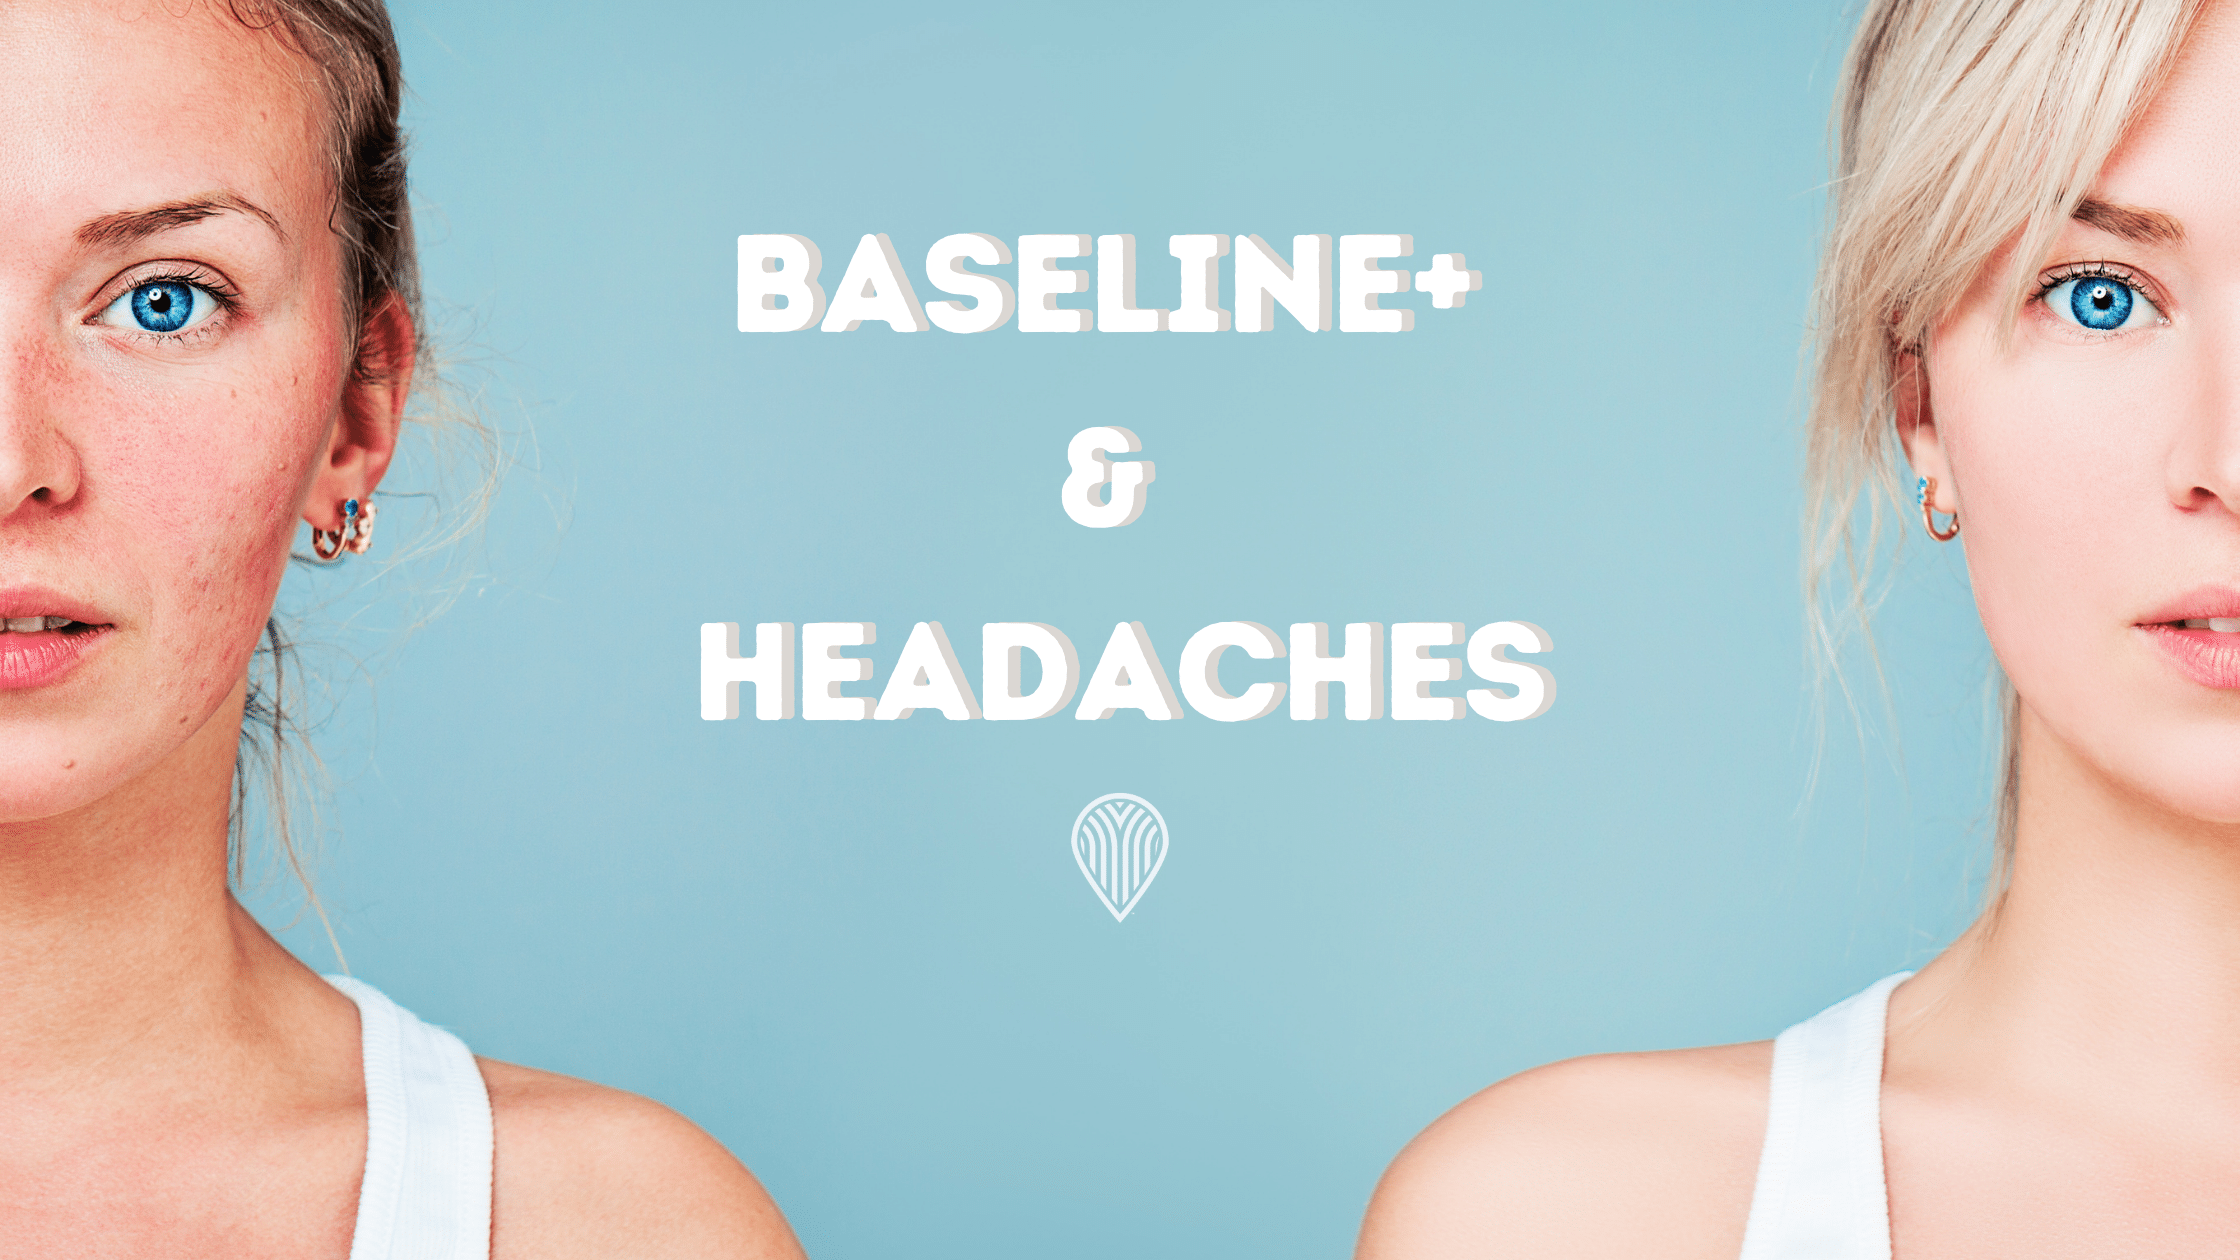 Baseline+ & Headaches